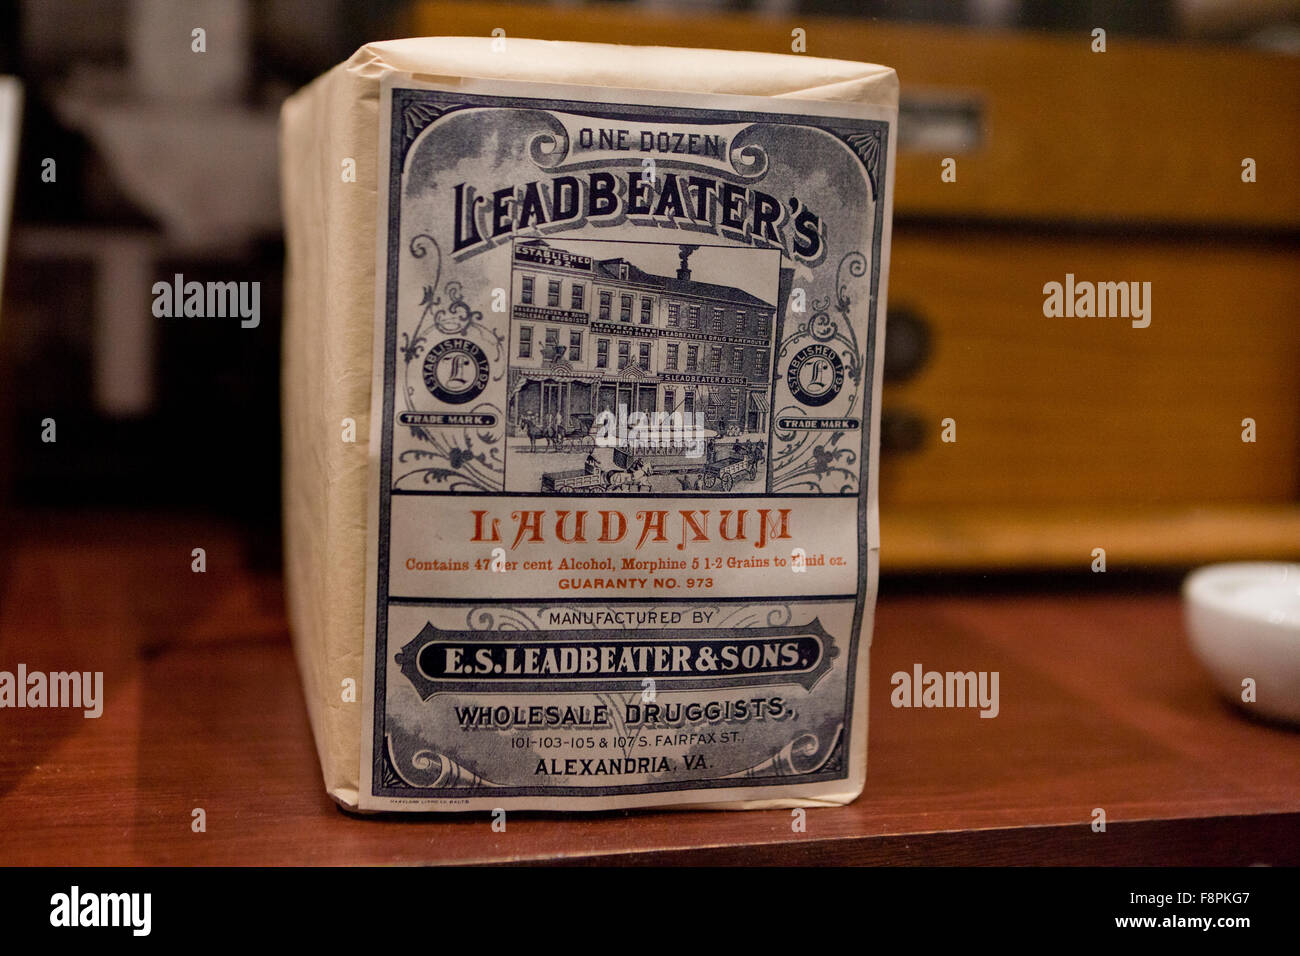 Leadbeater's Laudanum package, painkiller marketed in the US, late 1800s to early 1900s - USA - Stock Image